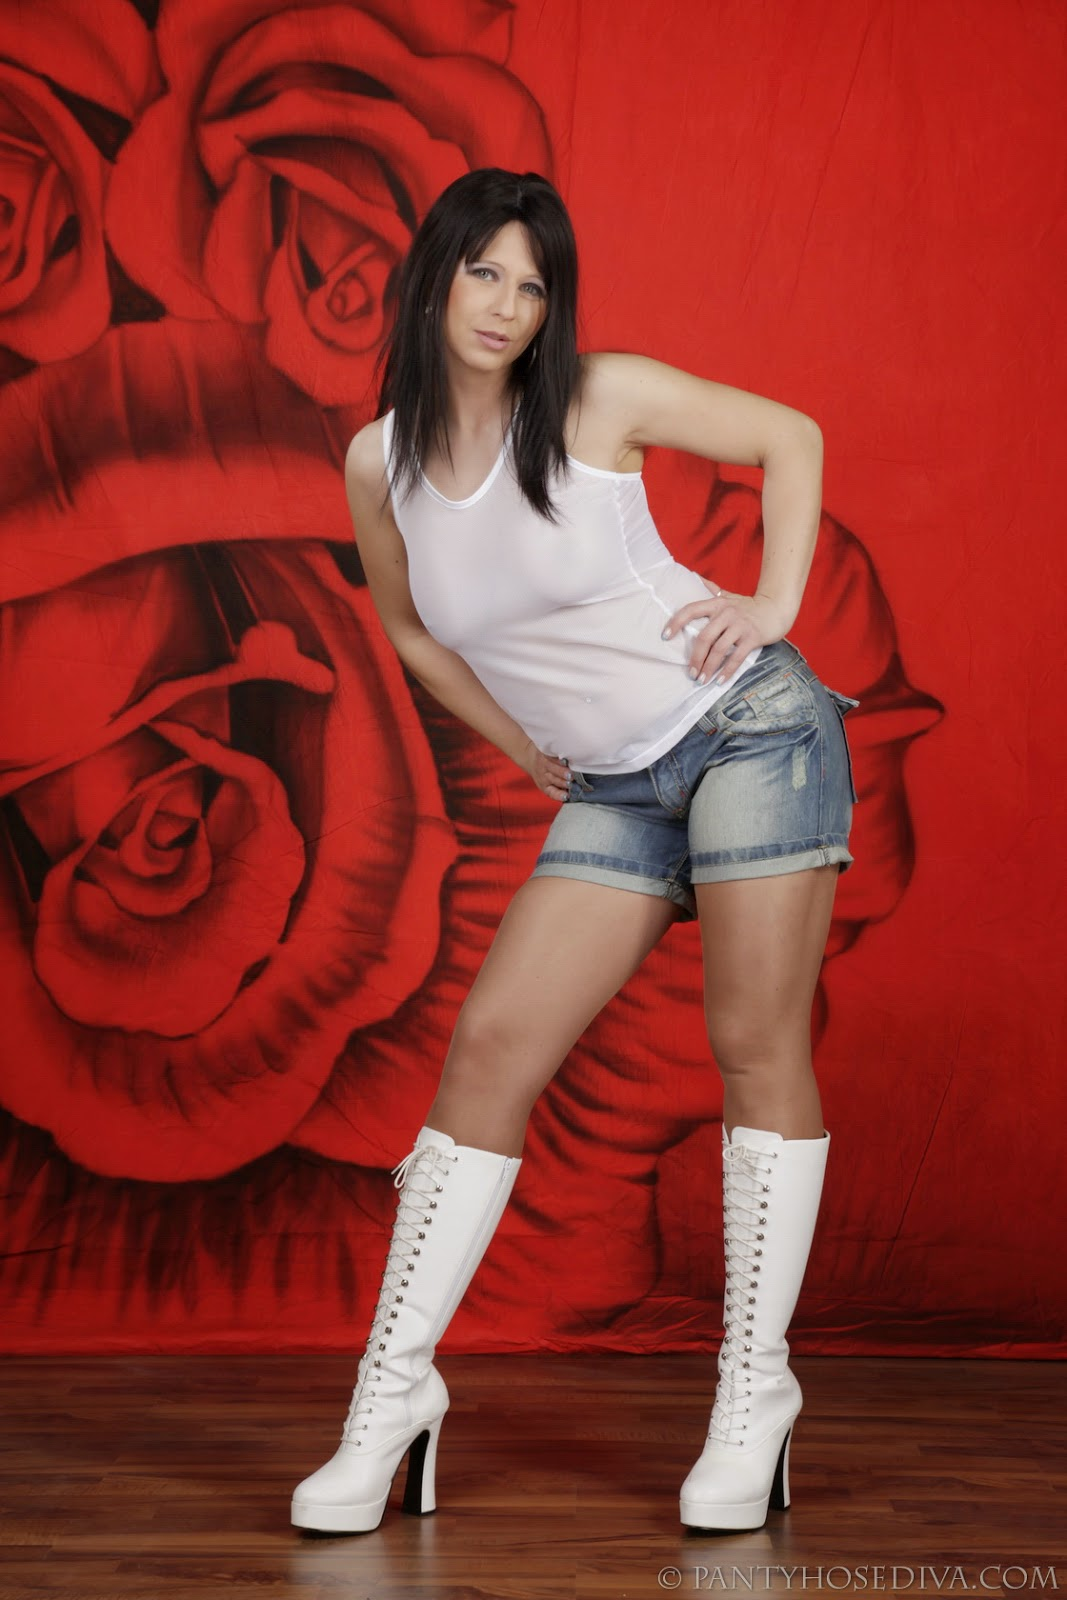 Mature Lovers Pantyhose Diva Wearing White Boots And -1681